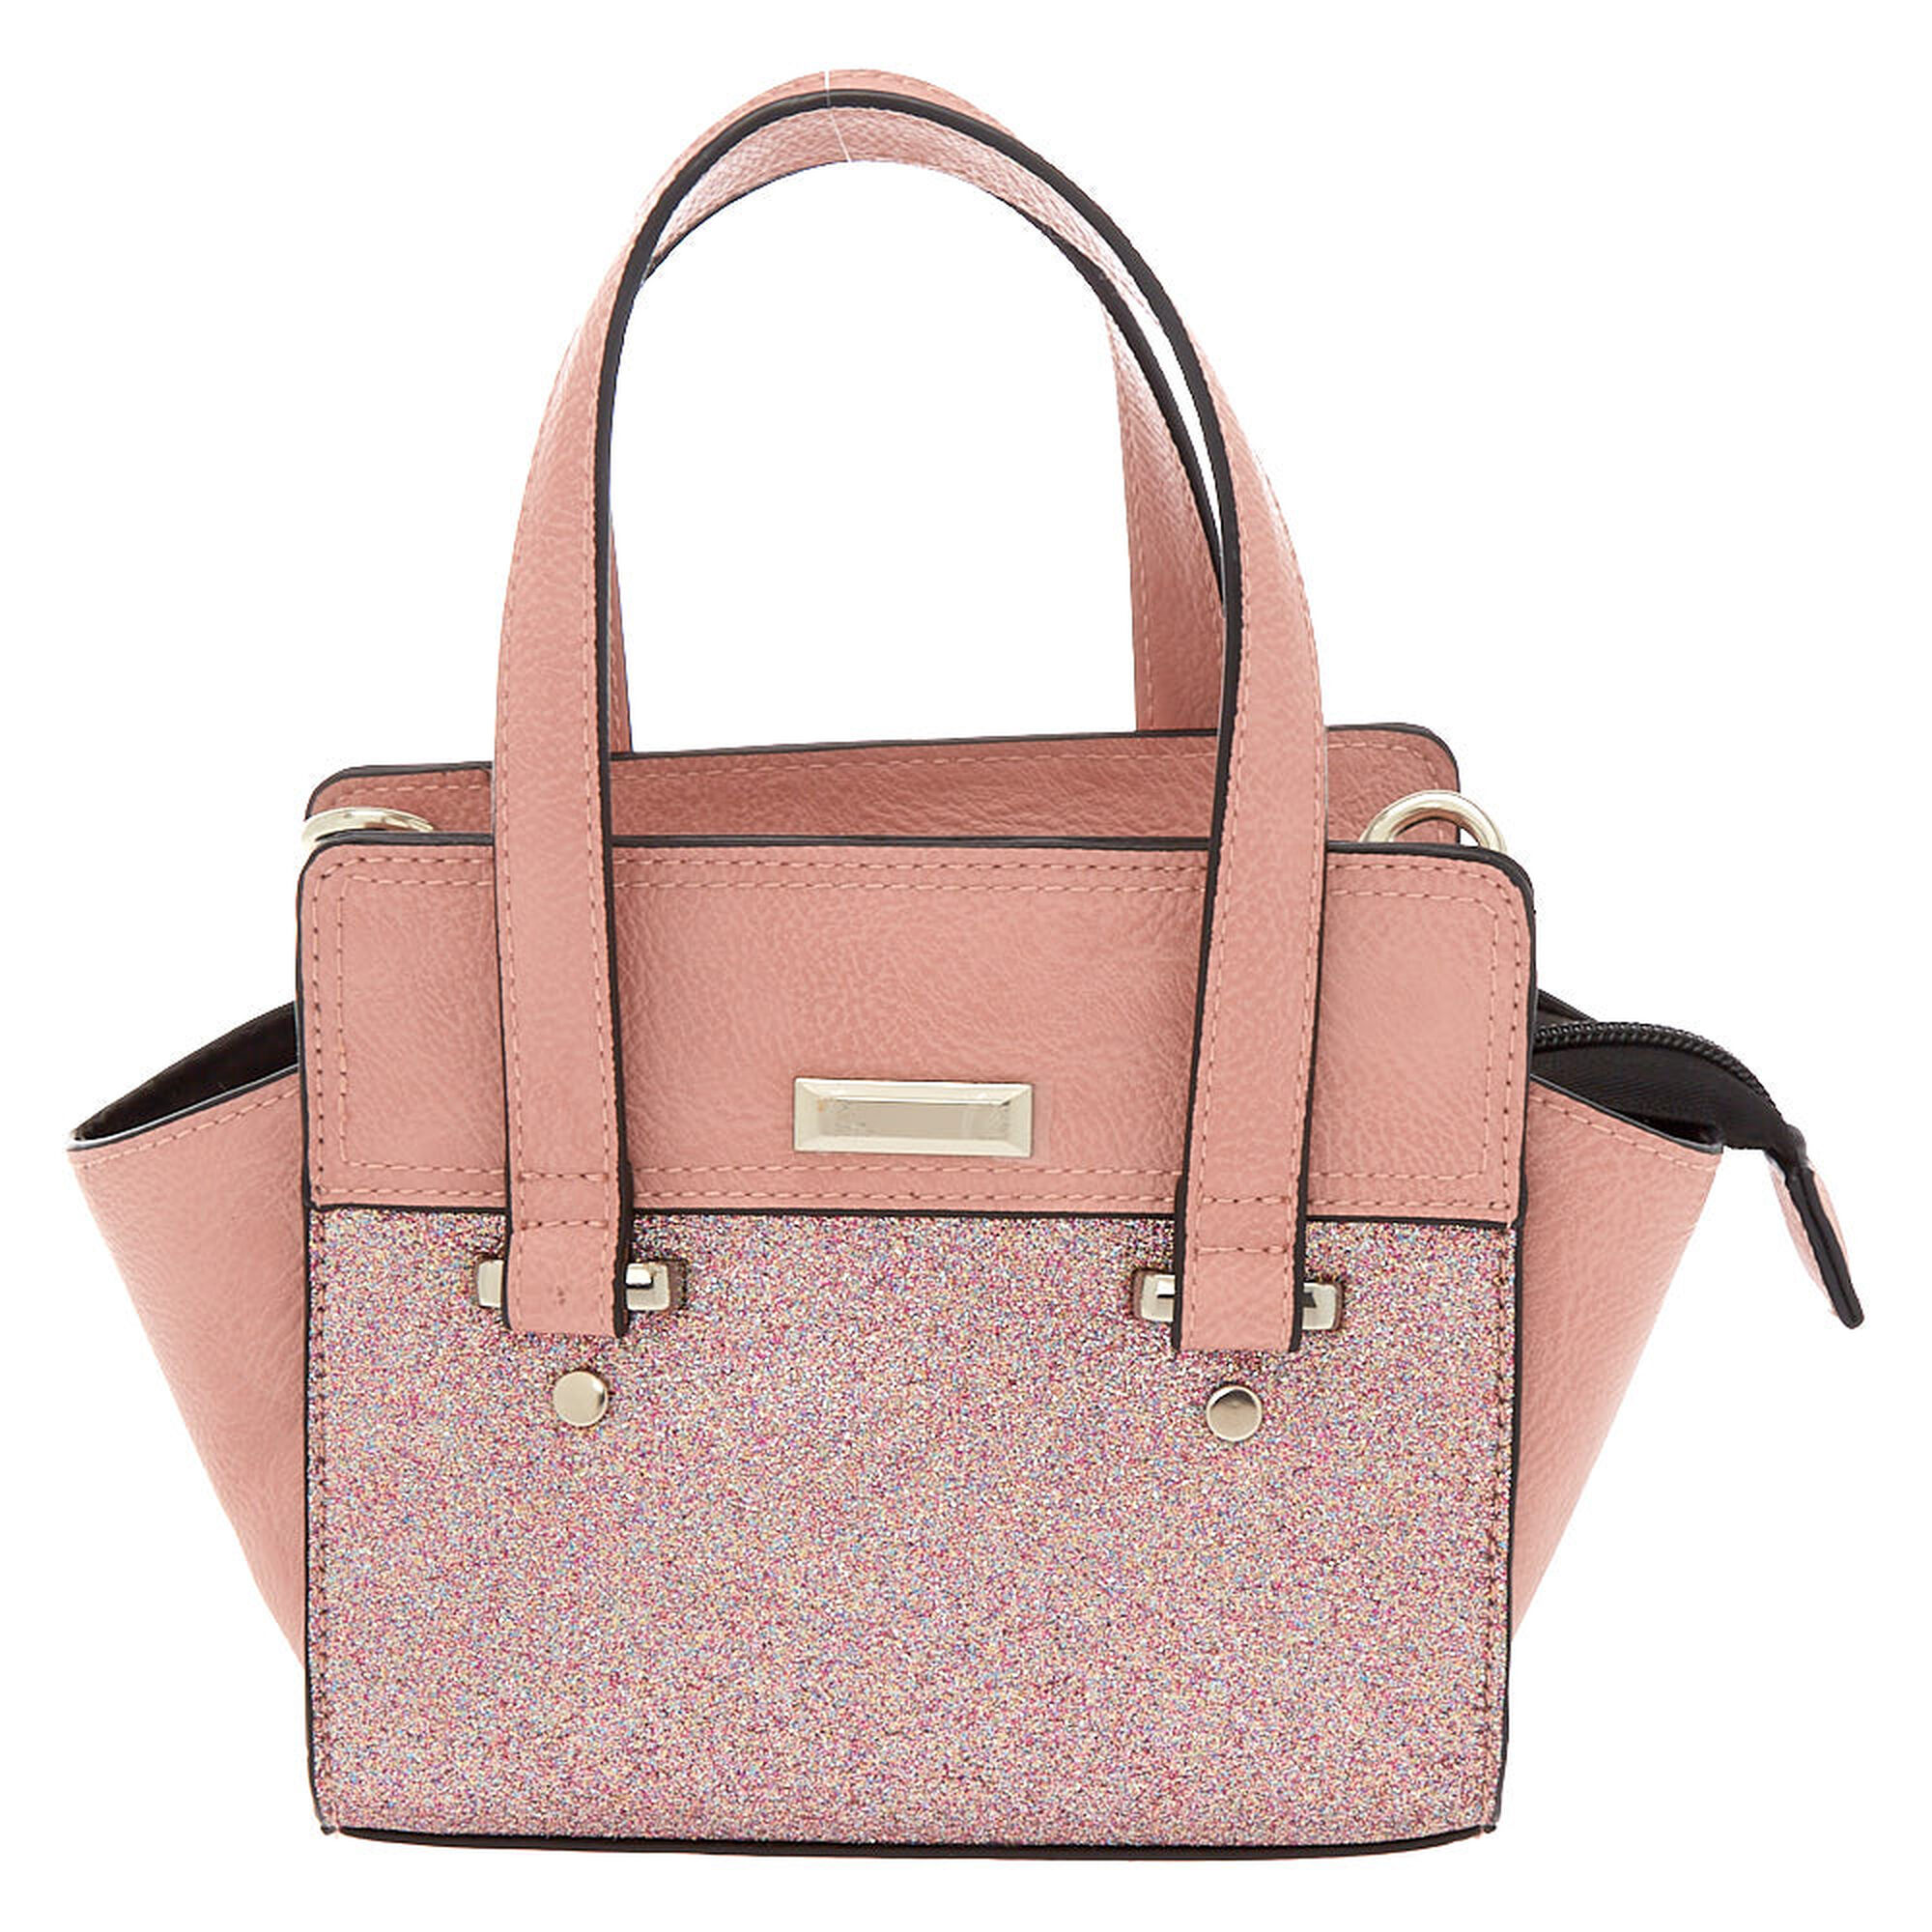 4a2d9f812452b Glitter Mini Satchel Crossbody Bag - Pink